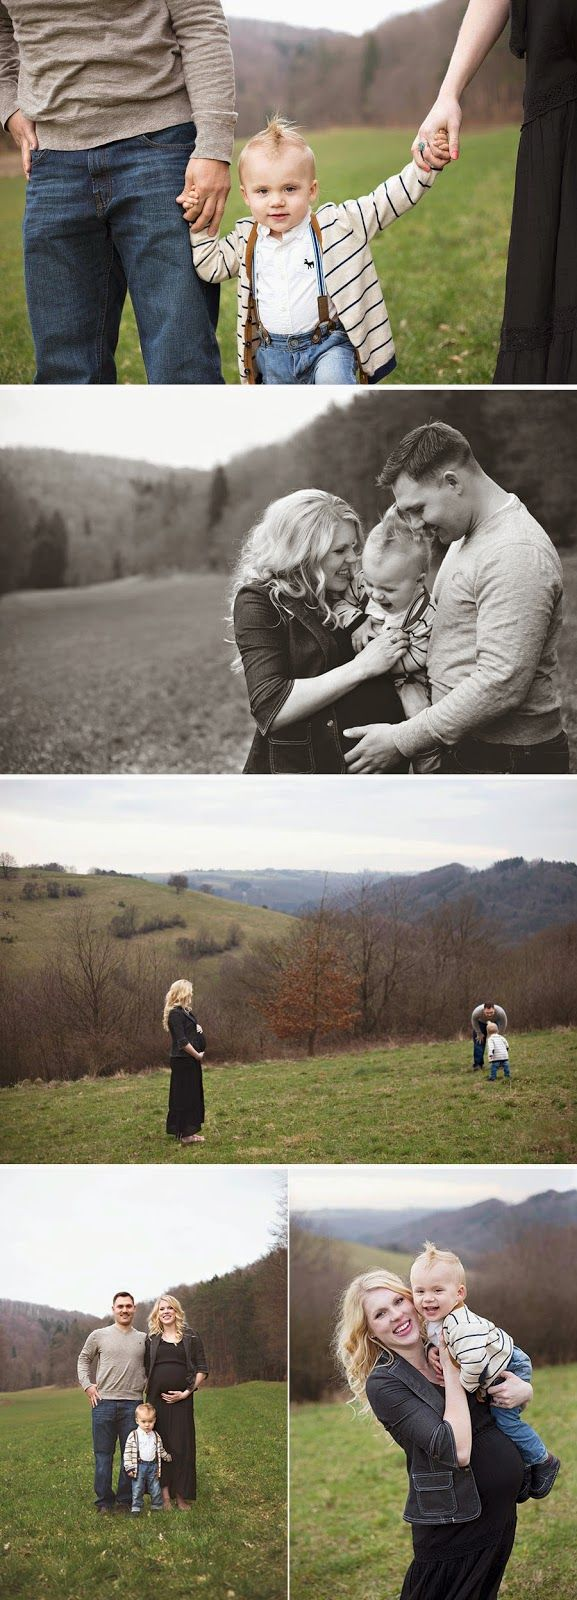 I love relaxed, fun, and natural maternity and family photo shoots.